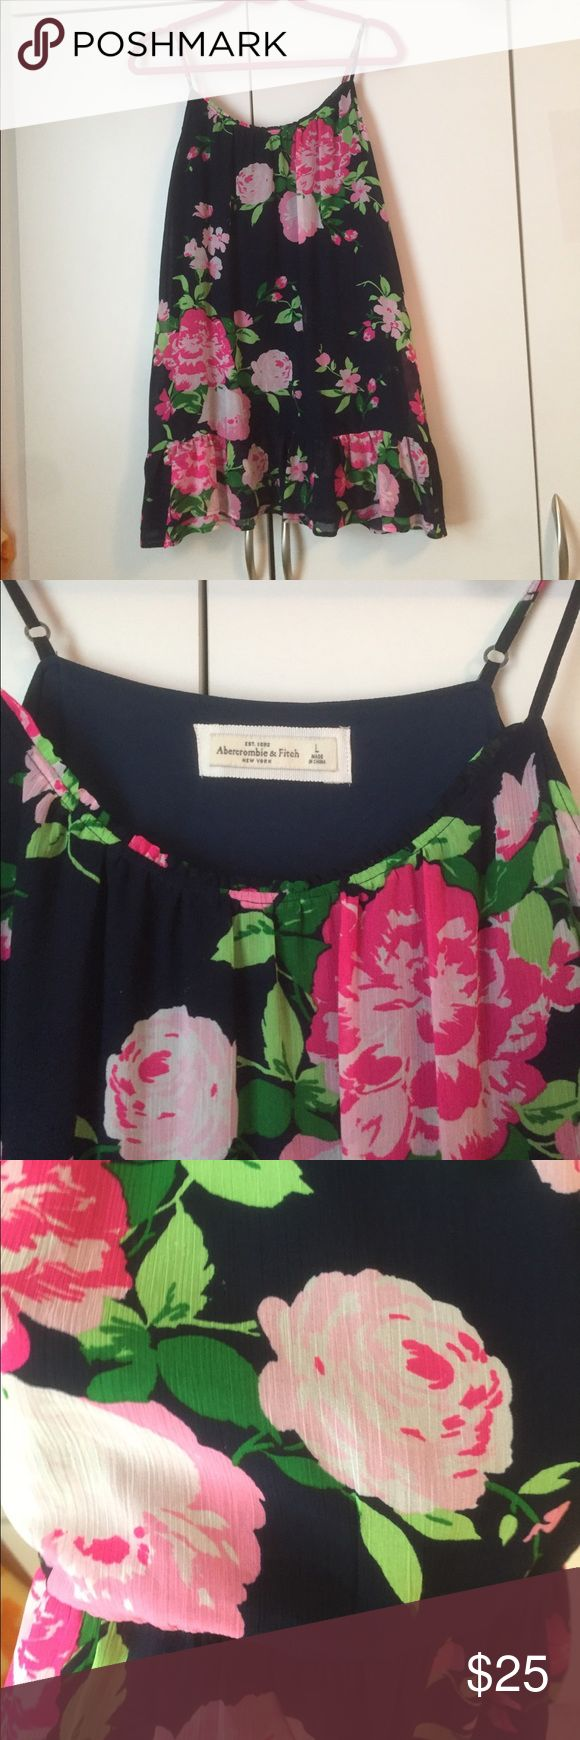 Floral printed navy sheer Abercrombie dress Floral printed navy sheer Abercrombie dress, just like the white one has NEVER BEEN WORN and is in PERFECT CONDITION!!!!! Abercrombie & Fitch Dresses Mini